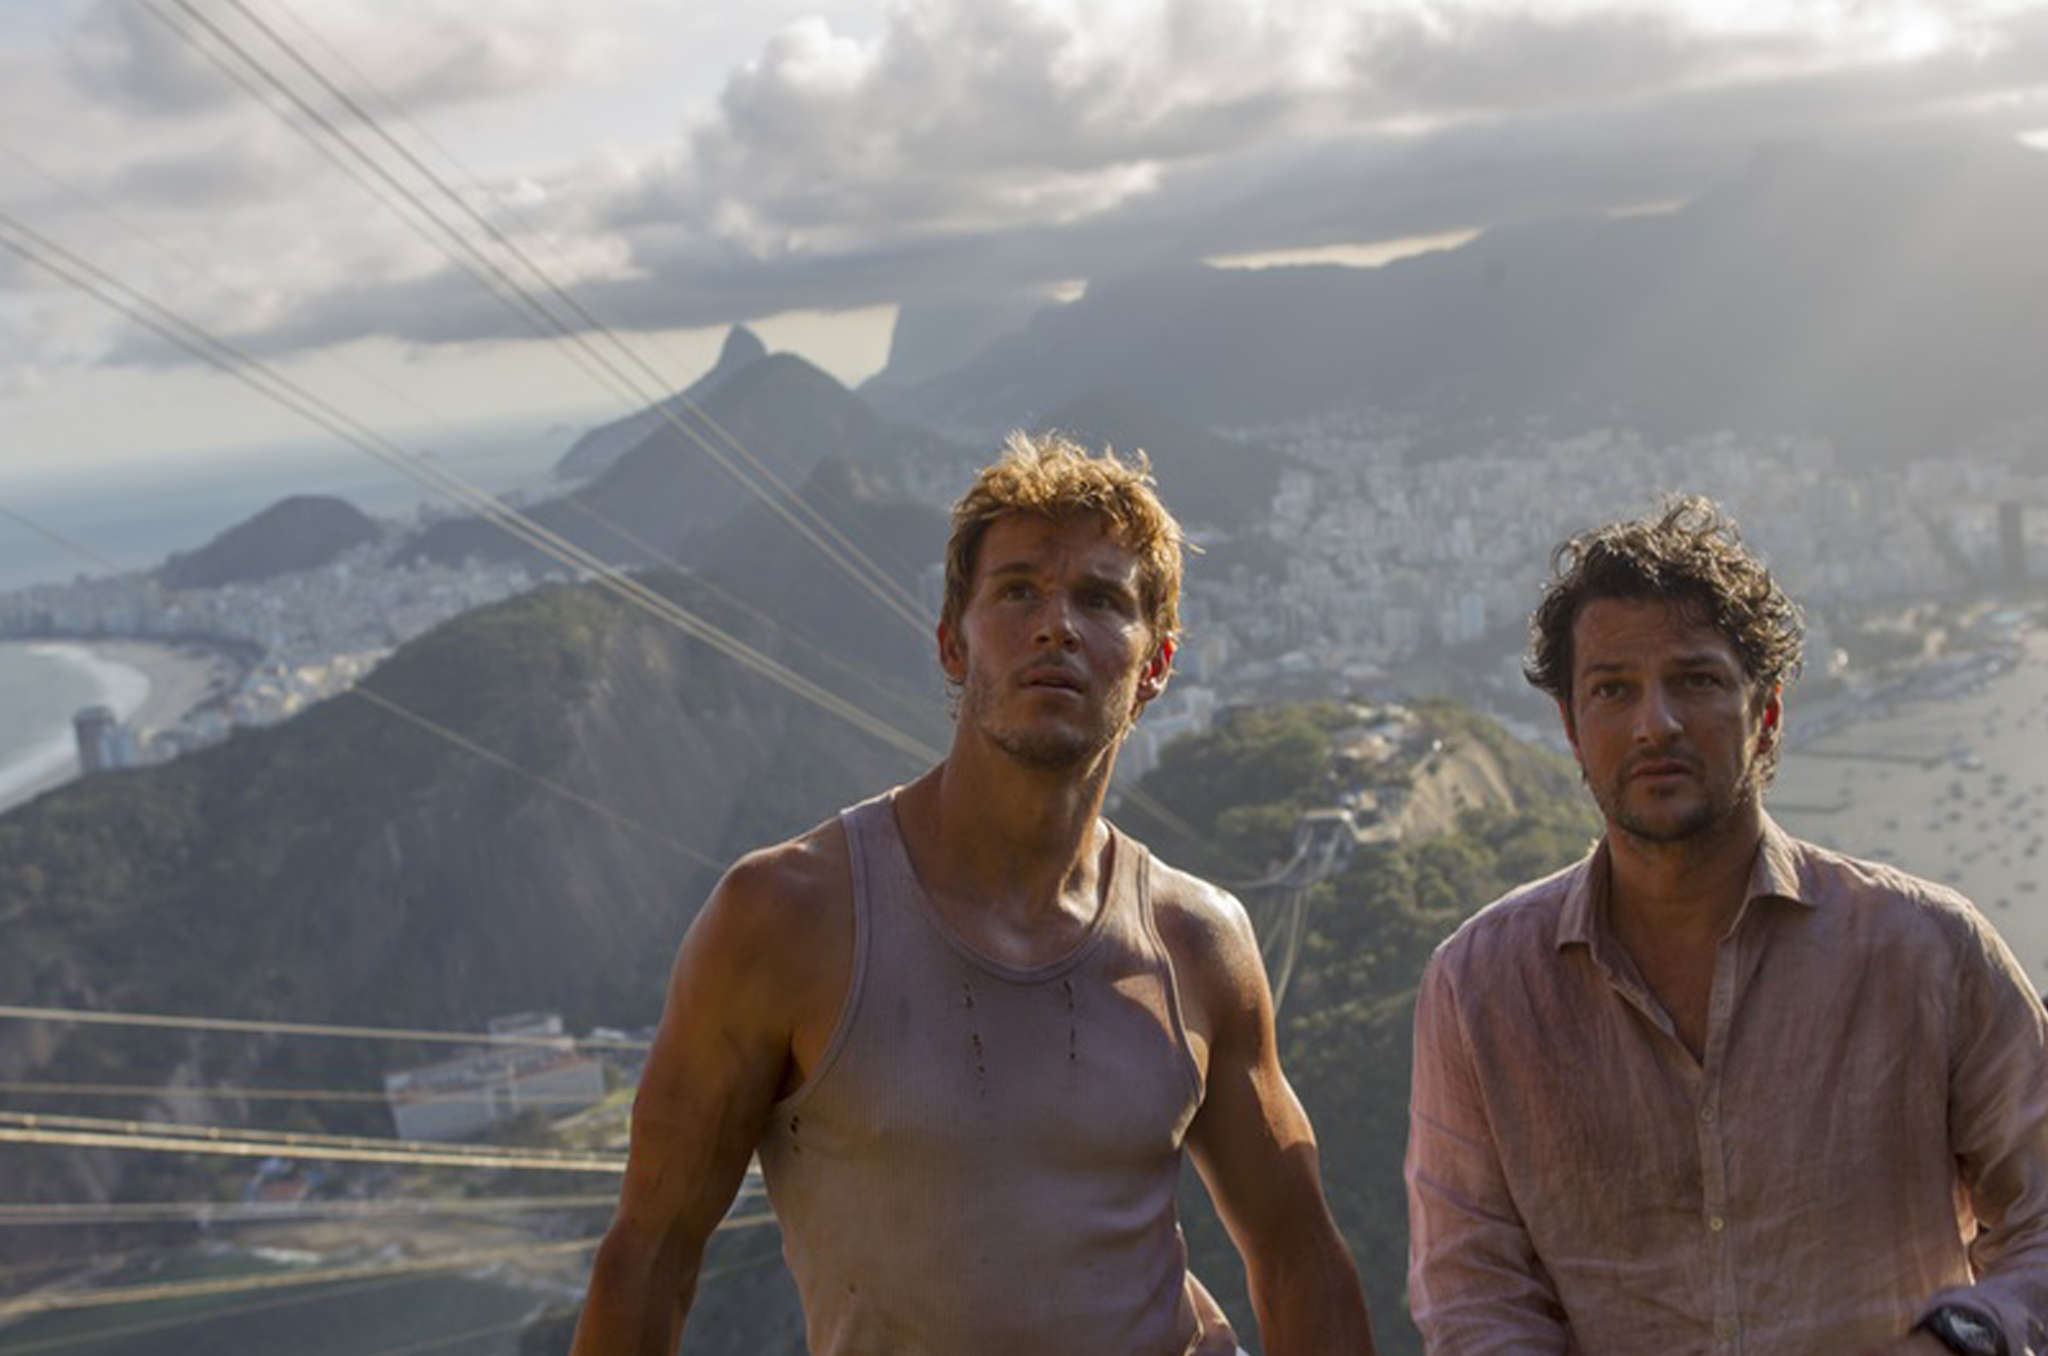 Ryan Kwanten (left) and Marcelo Serrado